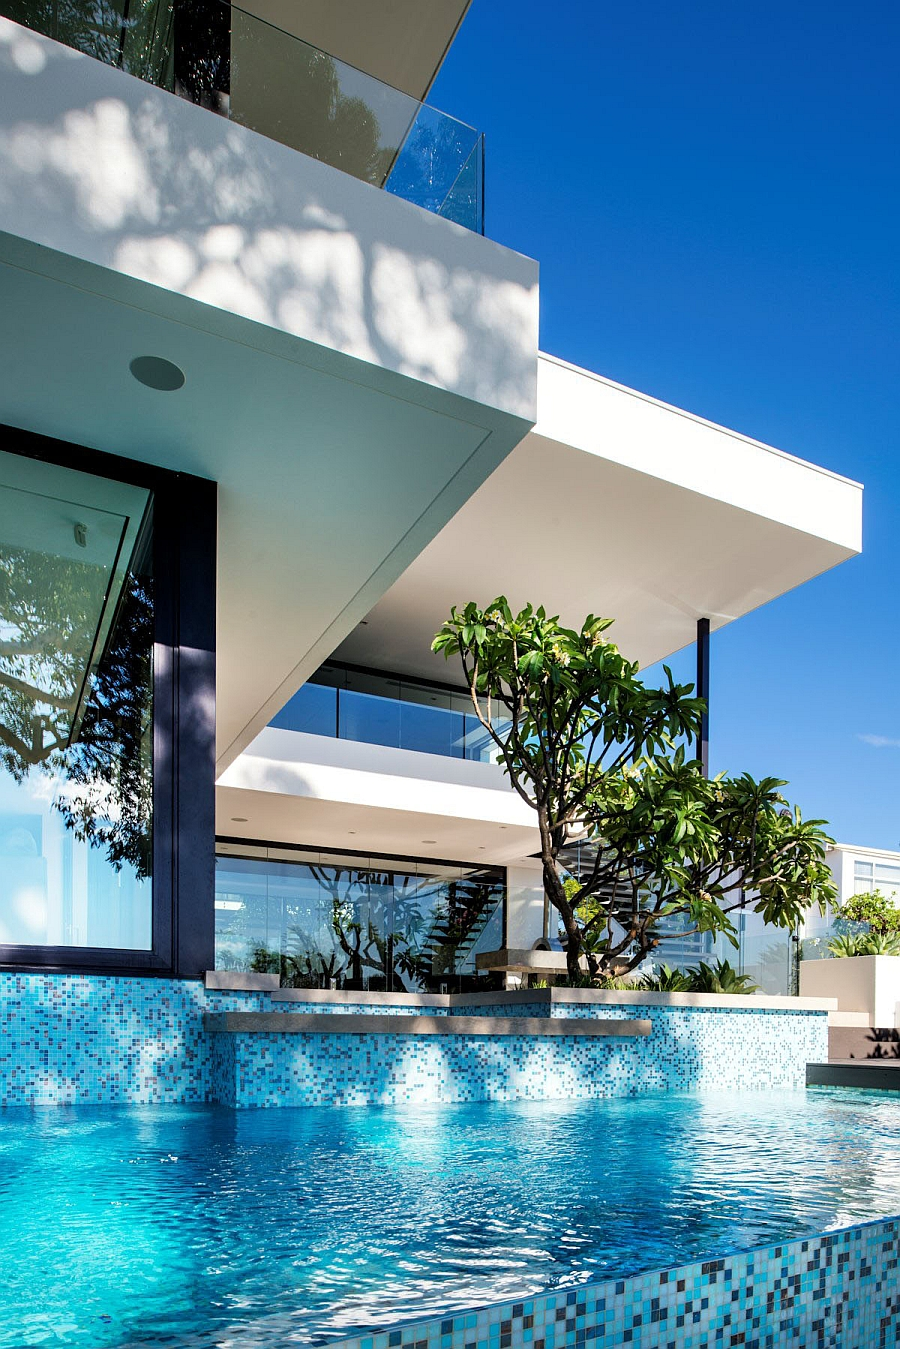 White and blue is the ideal color duo for the poolside space